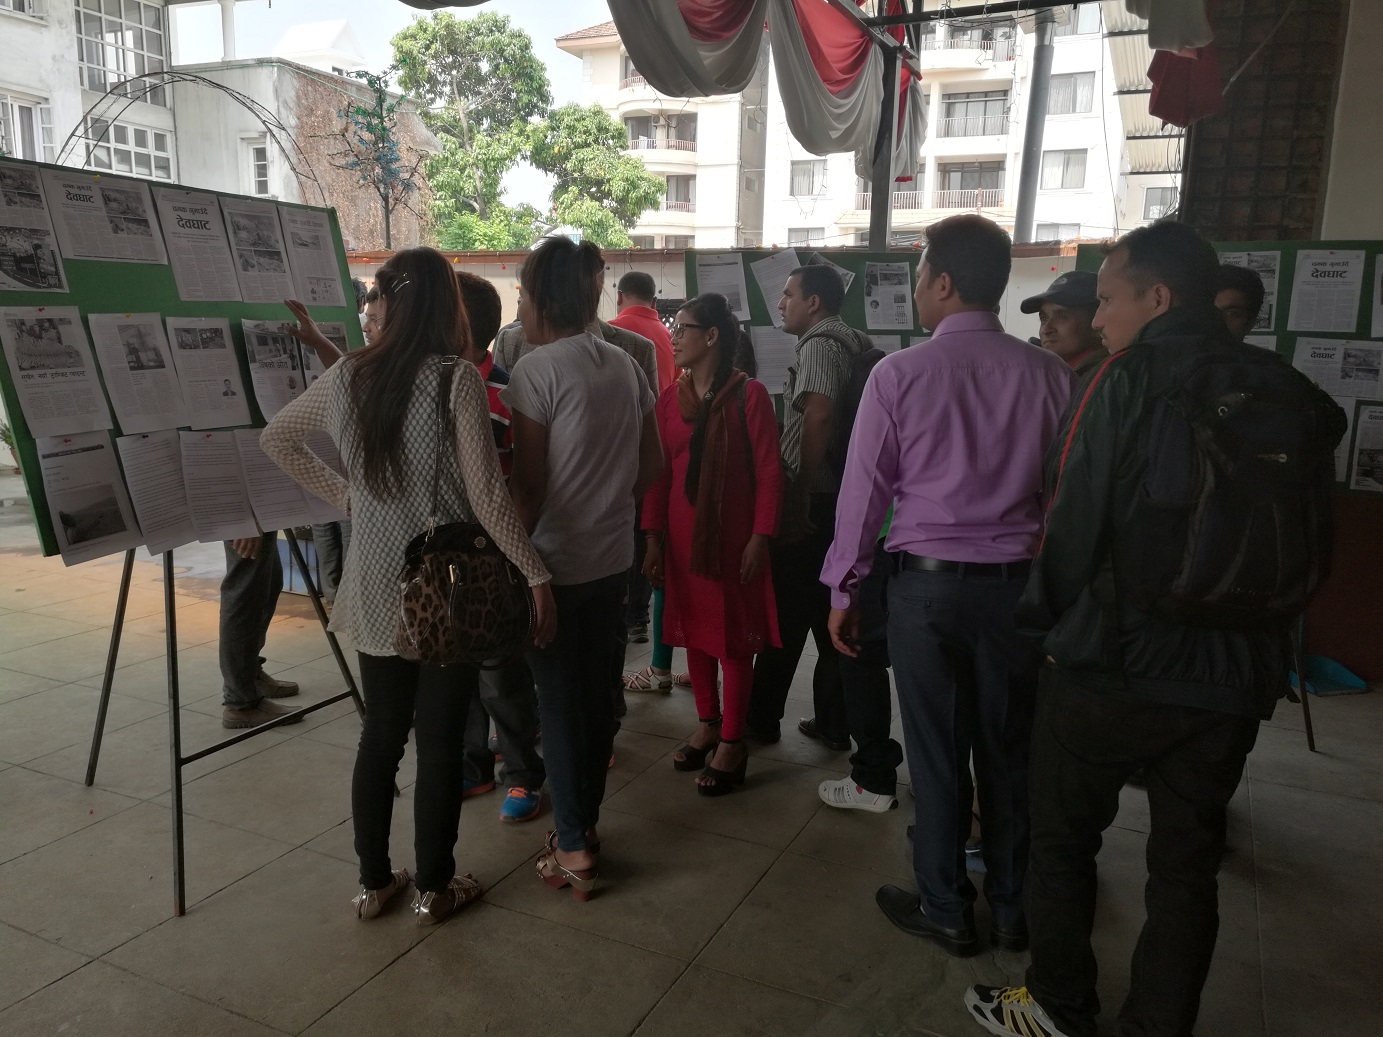 Participants reading news, articles or stories displayed at the premises of the venue. The gallery walk was set up to display the articles, stories and reports received for the environment reporting competition.